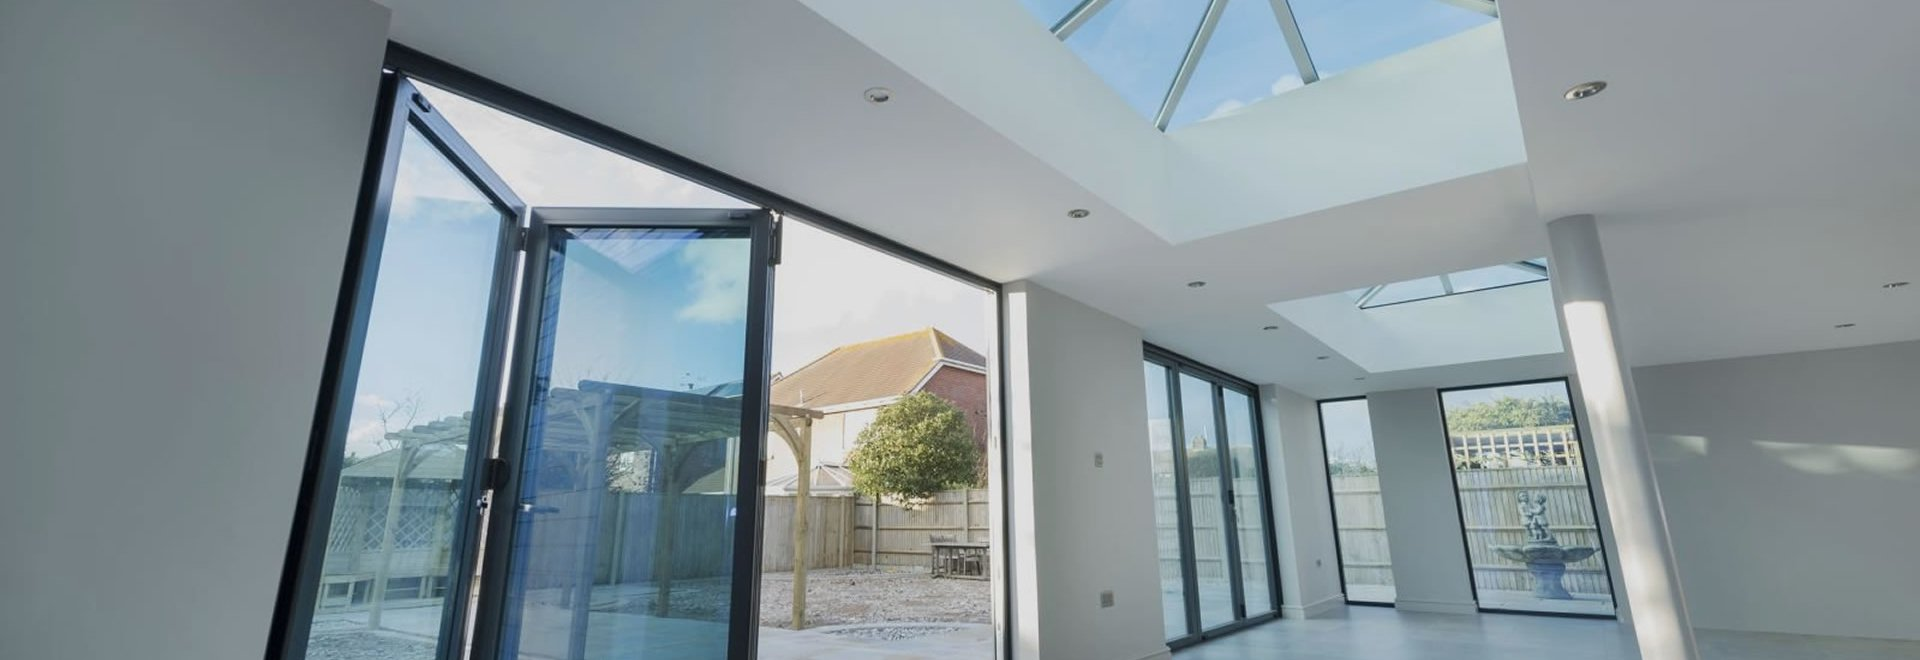 Sbs Upvc Building Products Uk